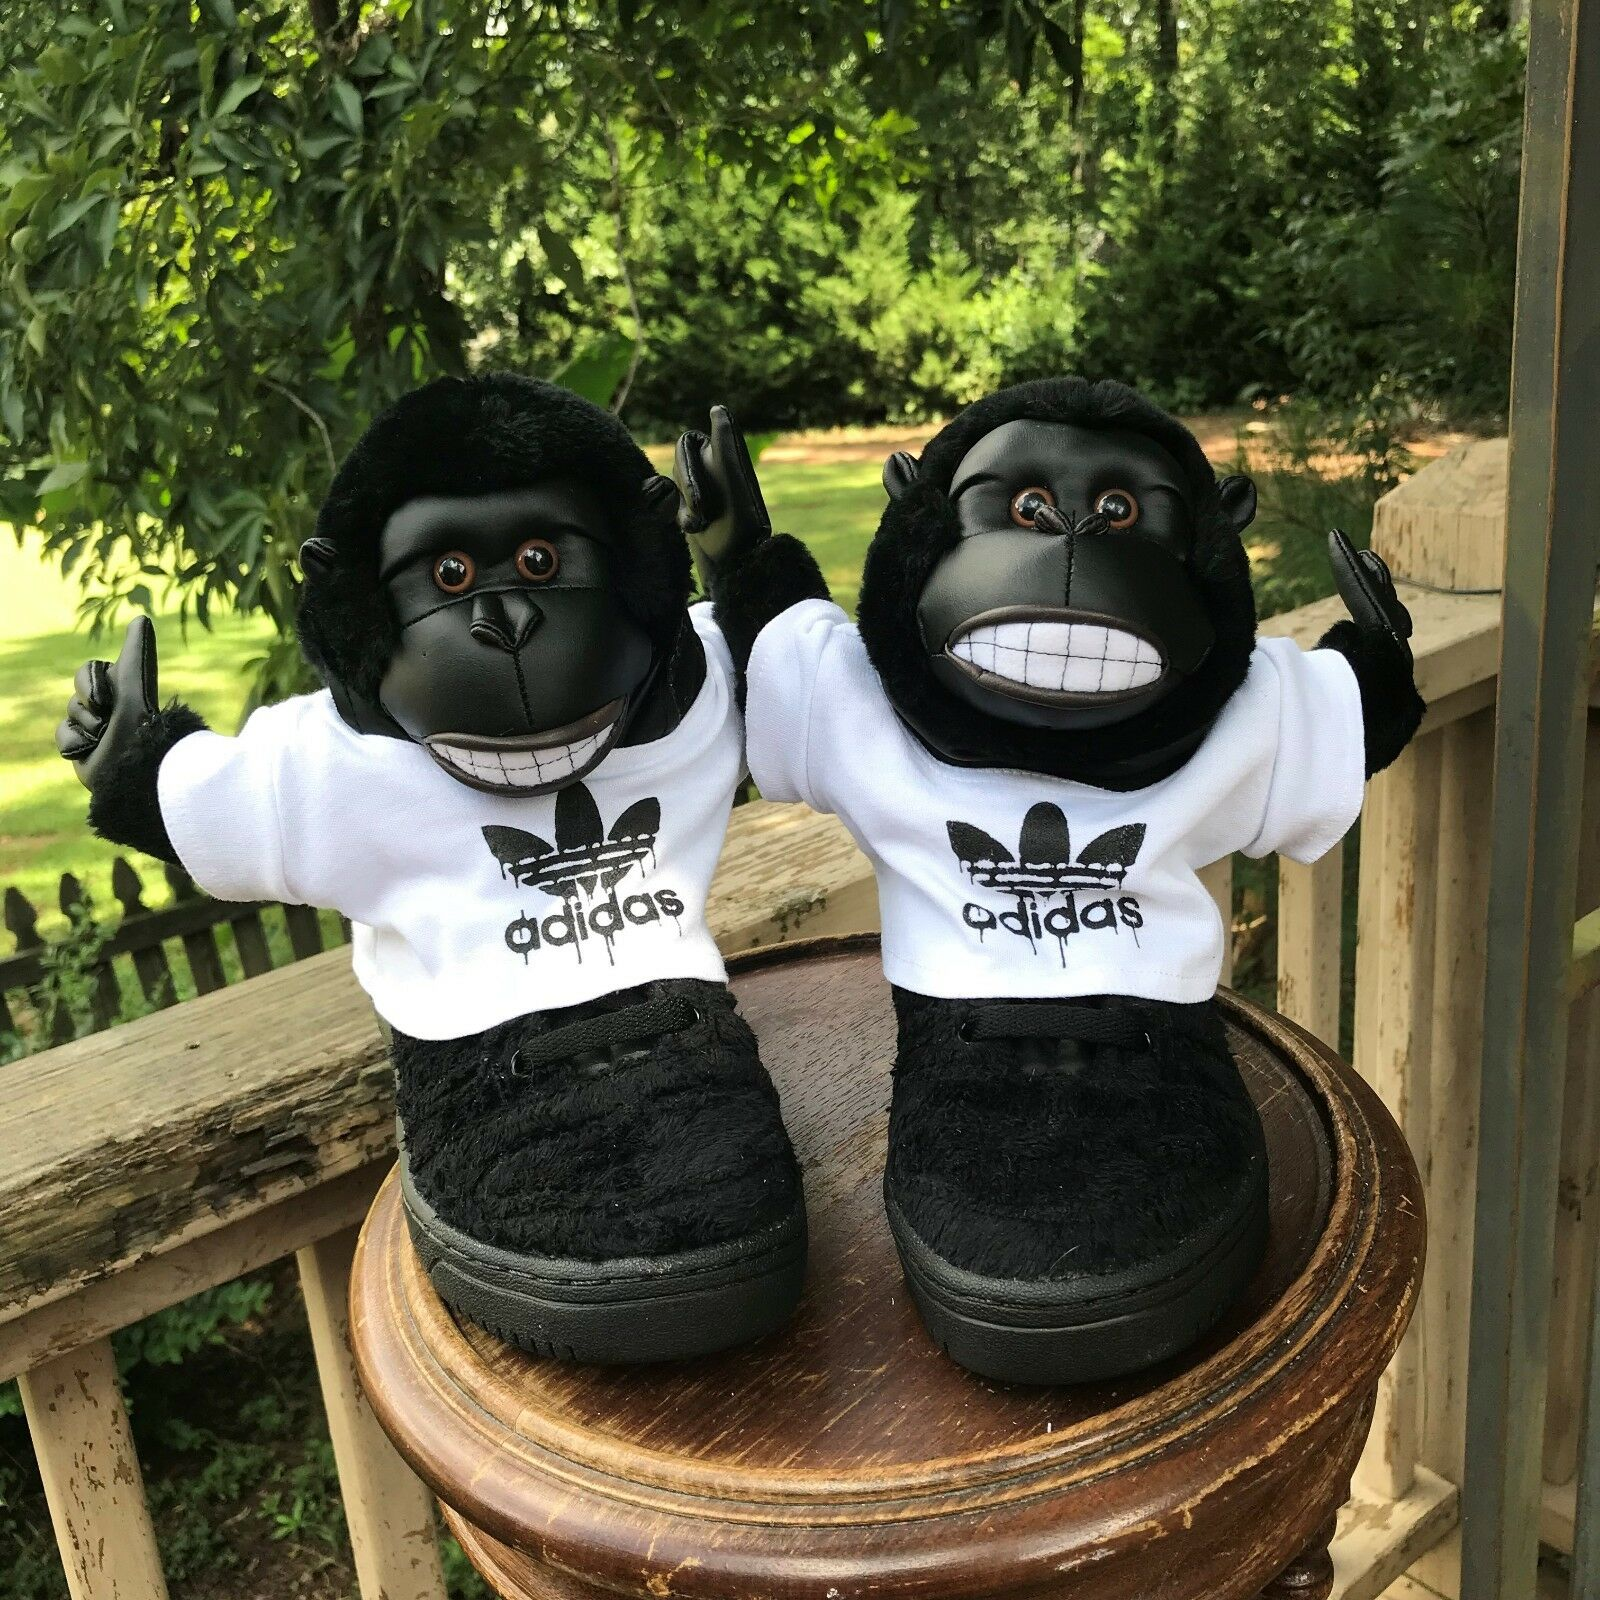 NEW Größe 4.5 Adidas Originals Jeremy Scott GORILLA MONKEY V24424 AUTHENTIC 100%